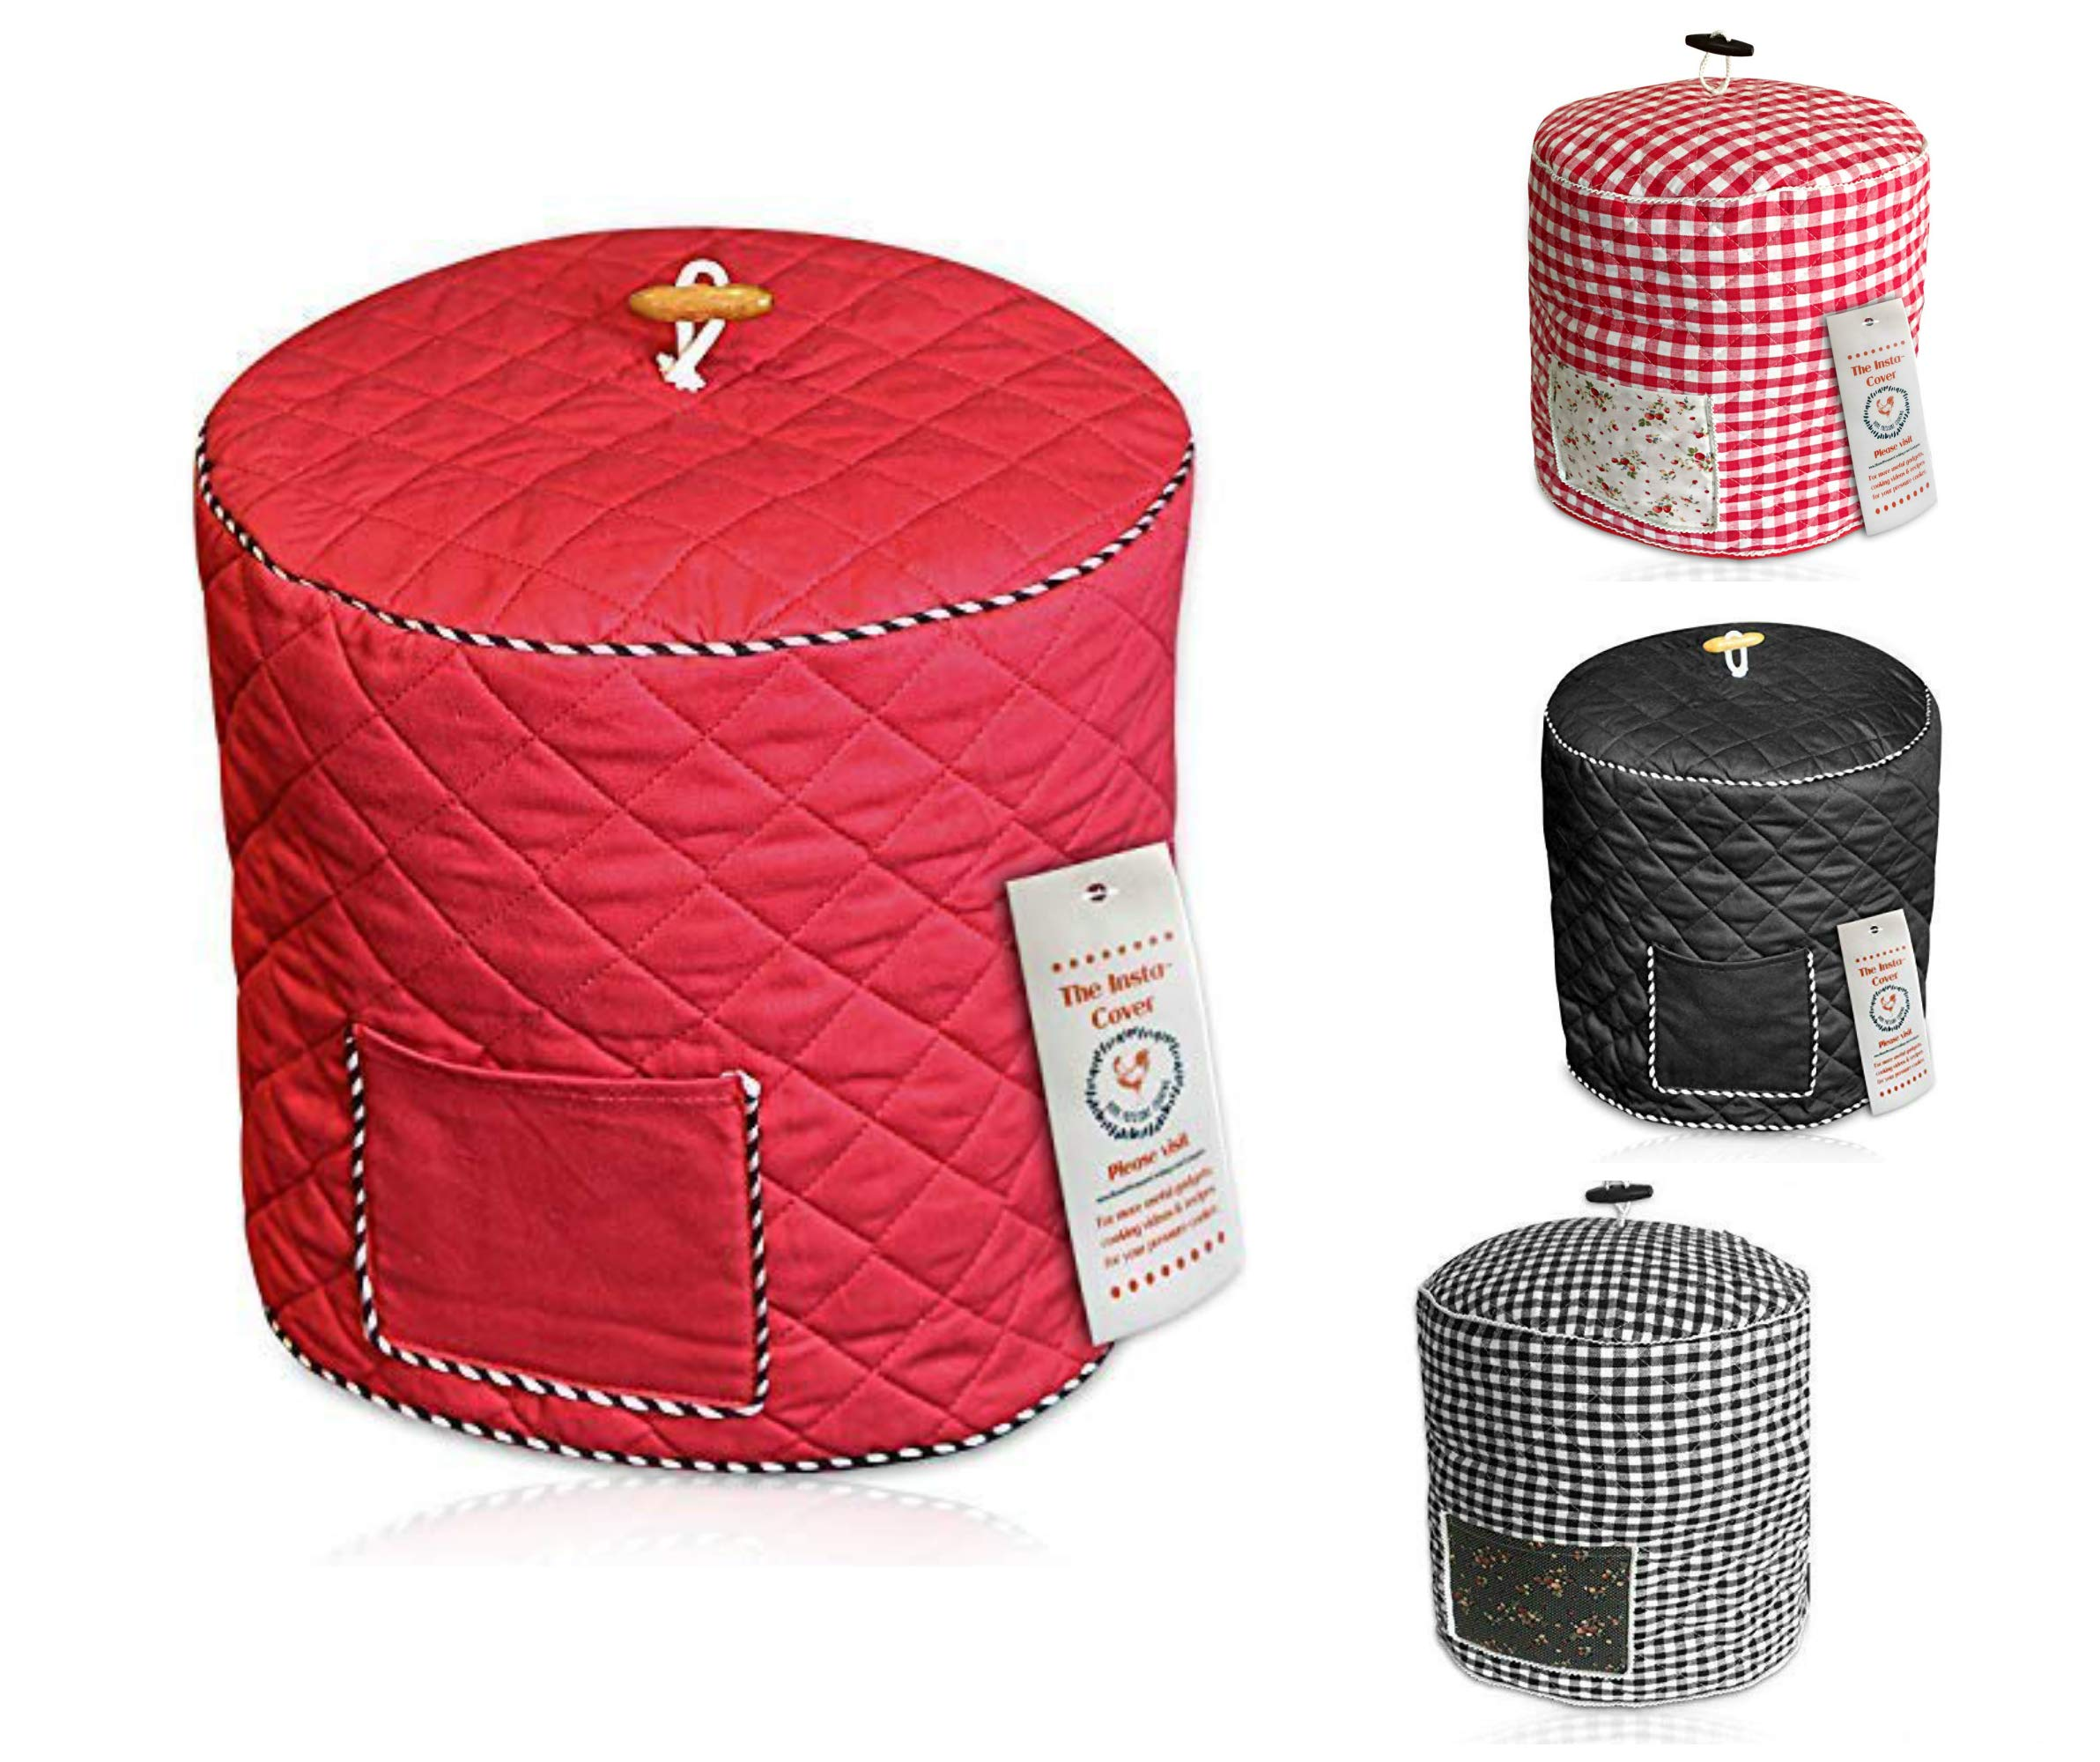 Electric Pressure Cooker Cover Decorative Cover with Pocket for Accessories Fits 6QT INSTANT POT and similar size (Red)